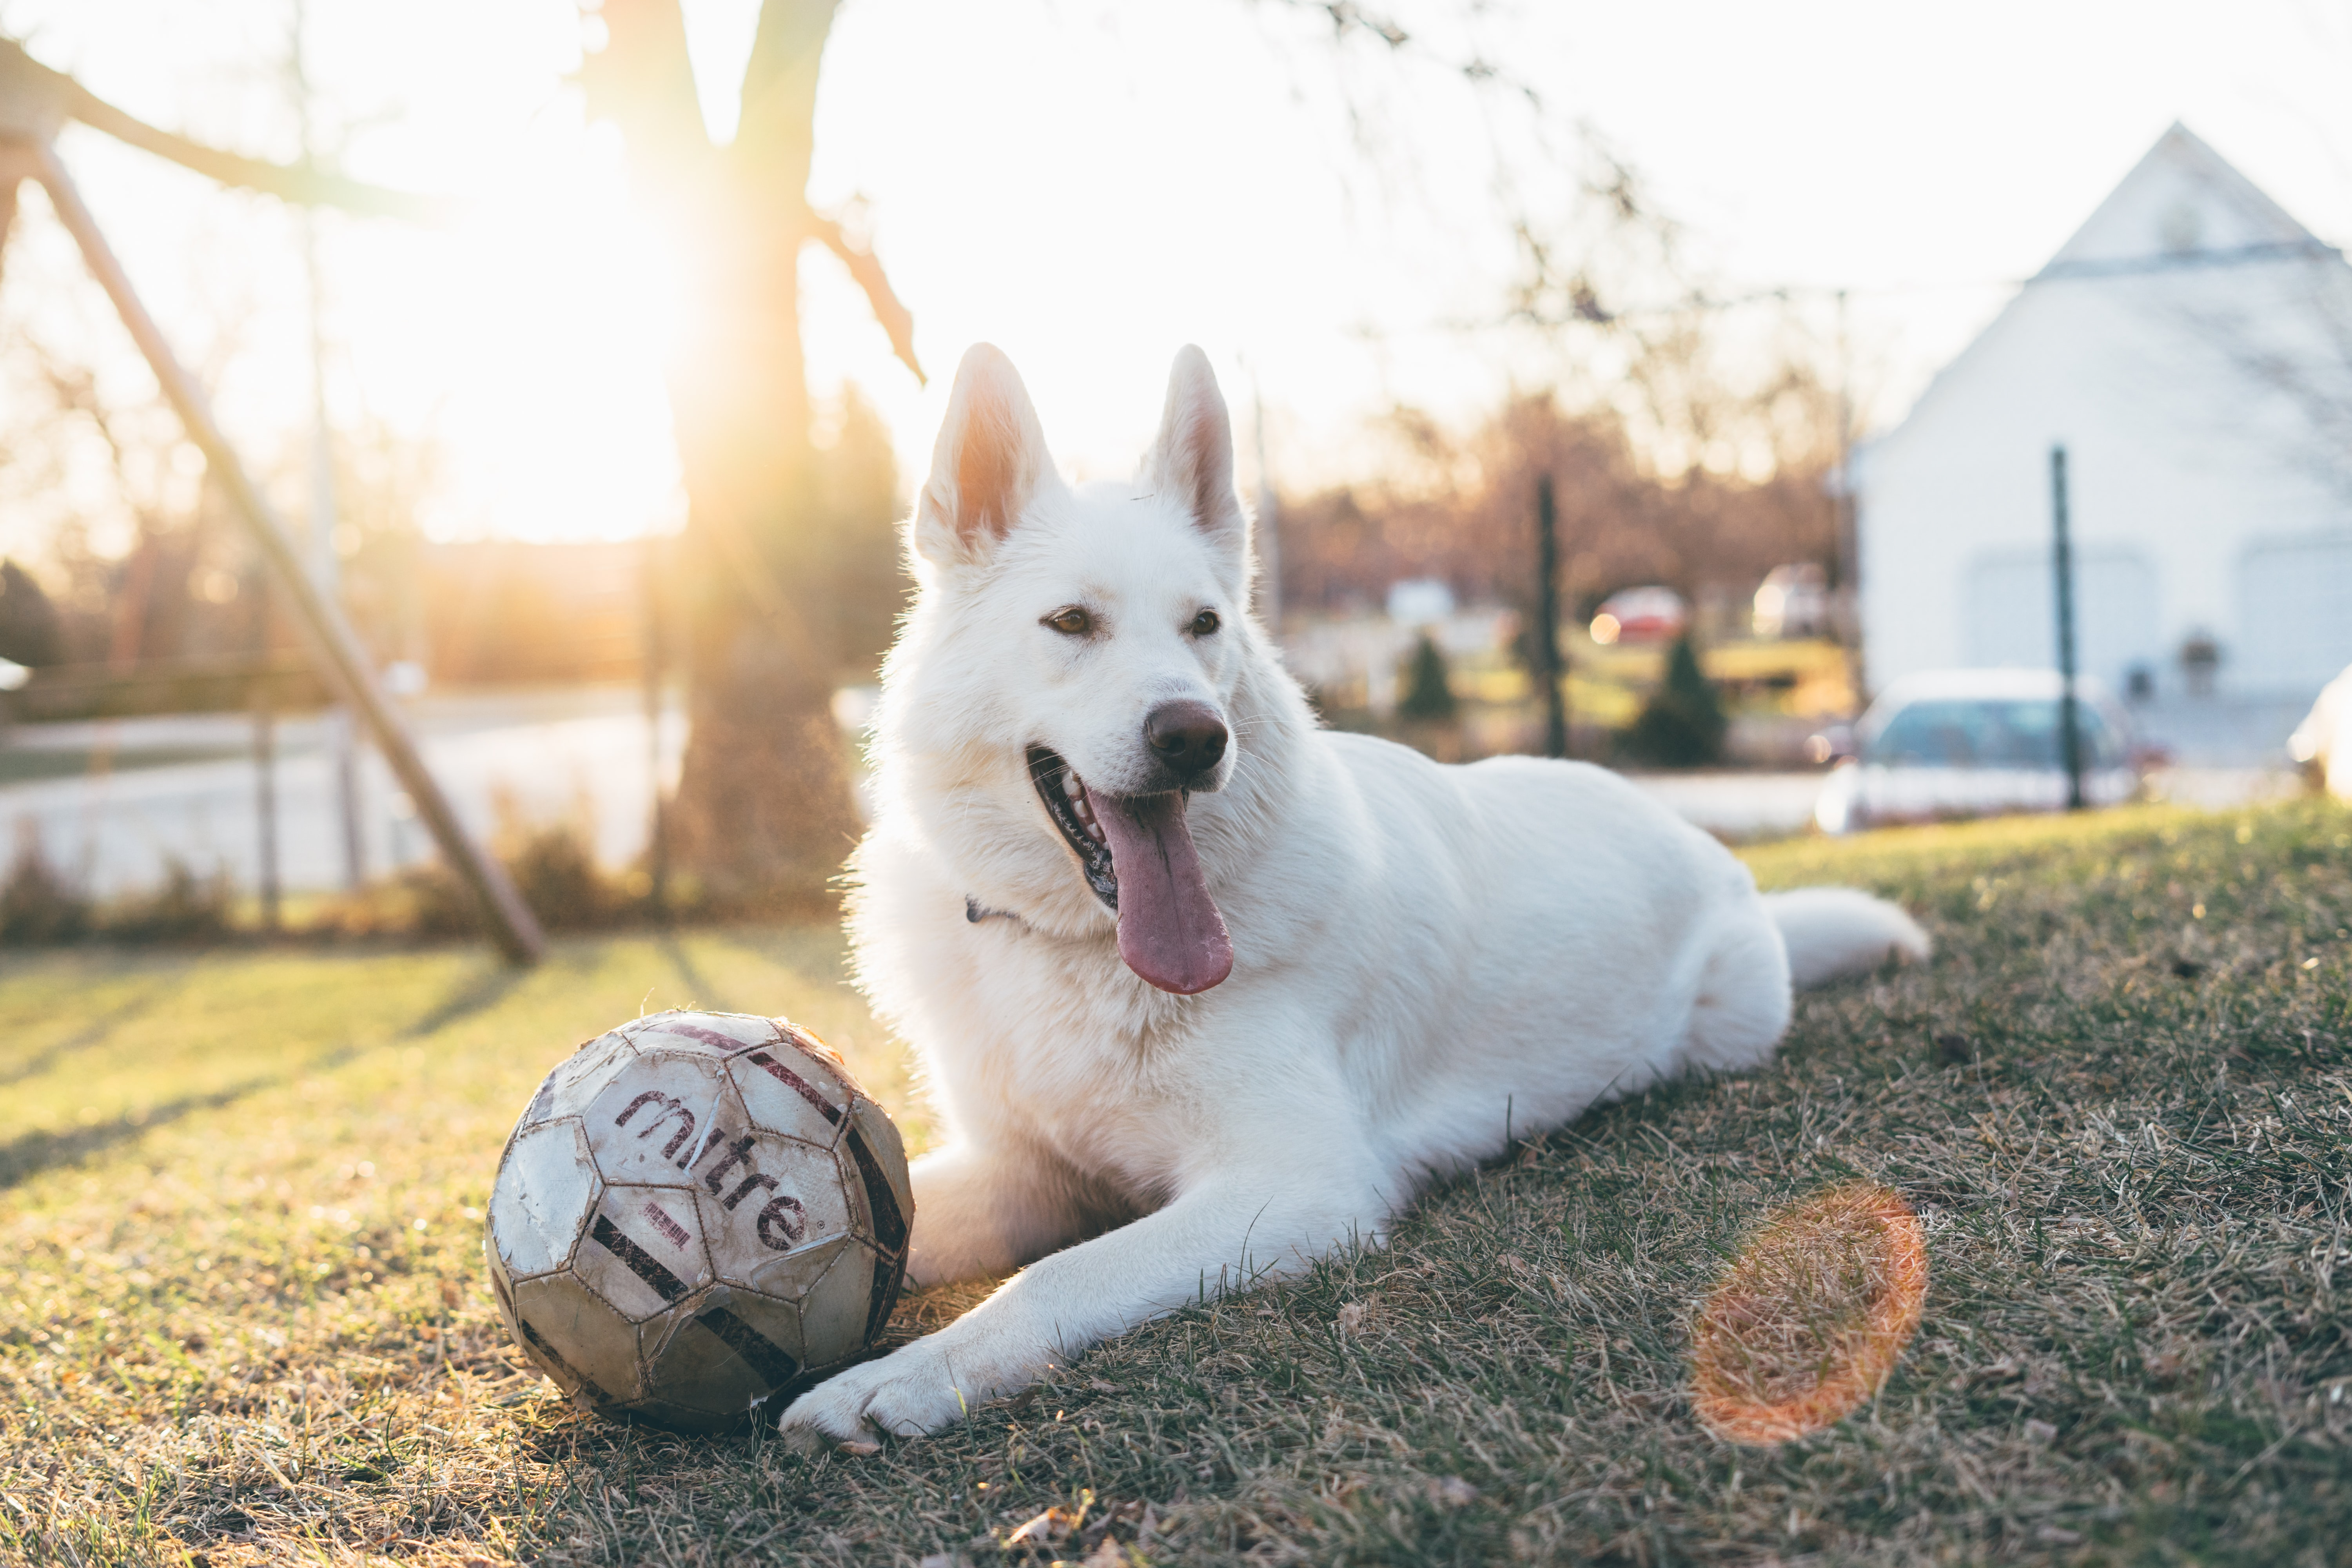 shallow focus photo of white dog beside gray soccerball outdoors